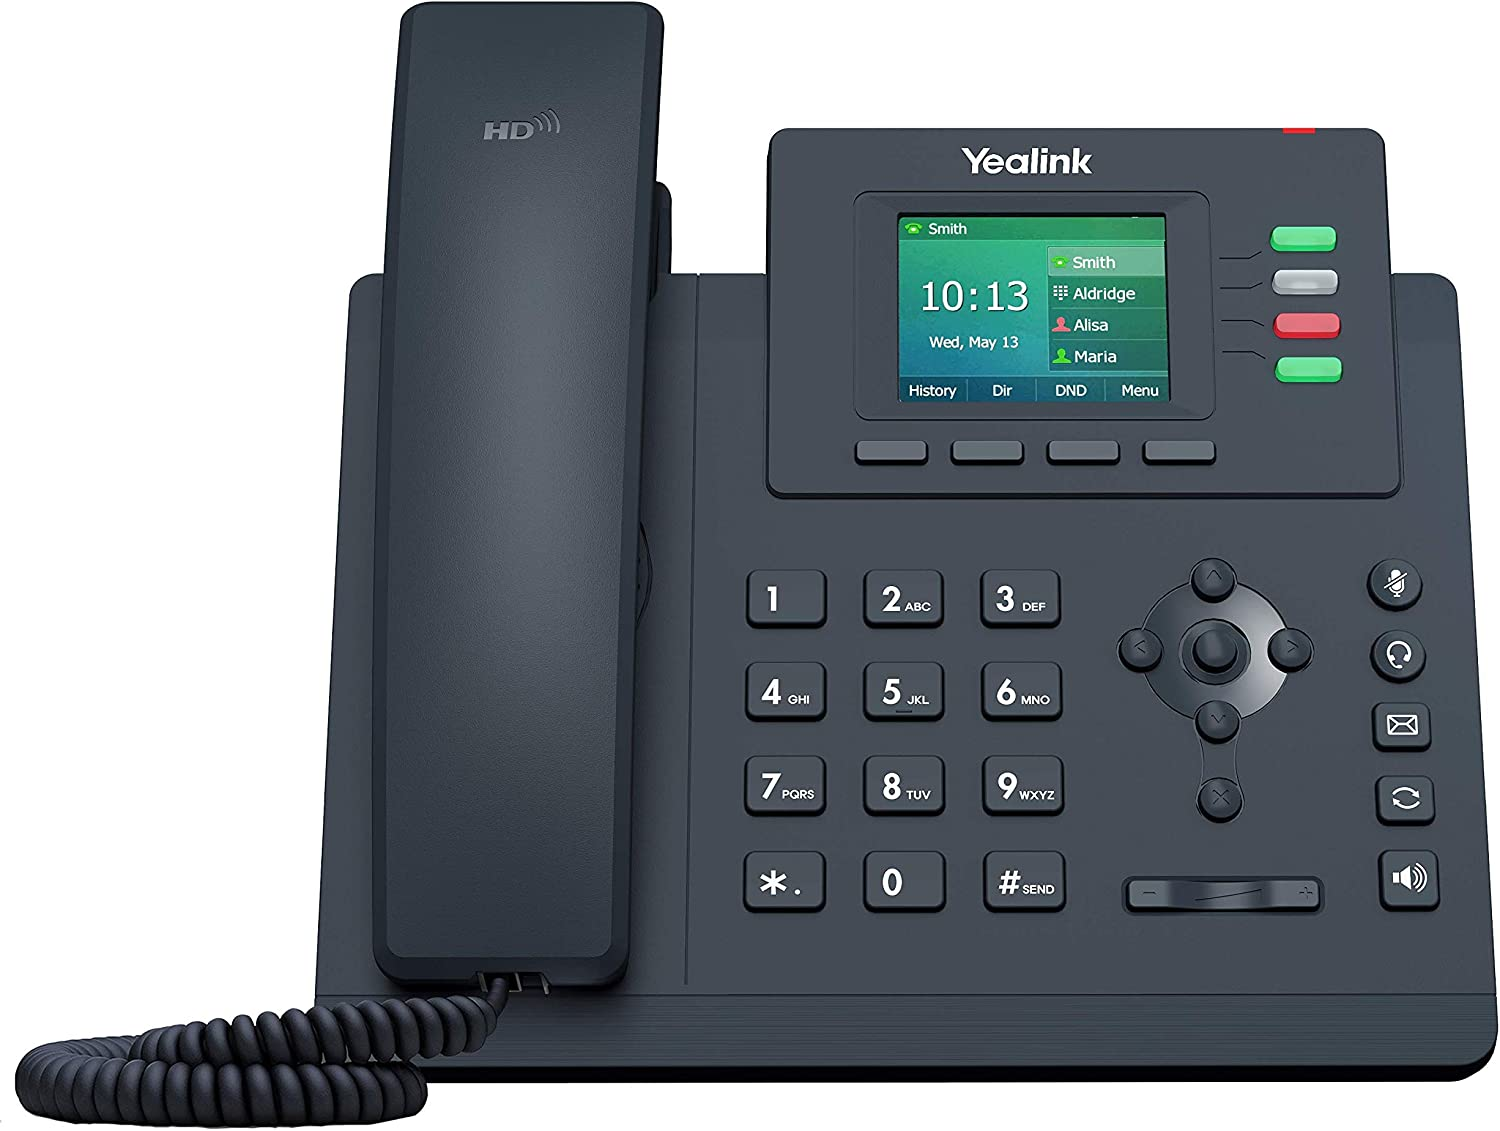 Yealink T33G IP Phone, 4 VoIP Accounts. 2.4-Inch Color Display. Dual-Port Gigabit Ethernet, 802.3af PoE, Power Adapter Not Included (SIP-T33G)